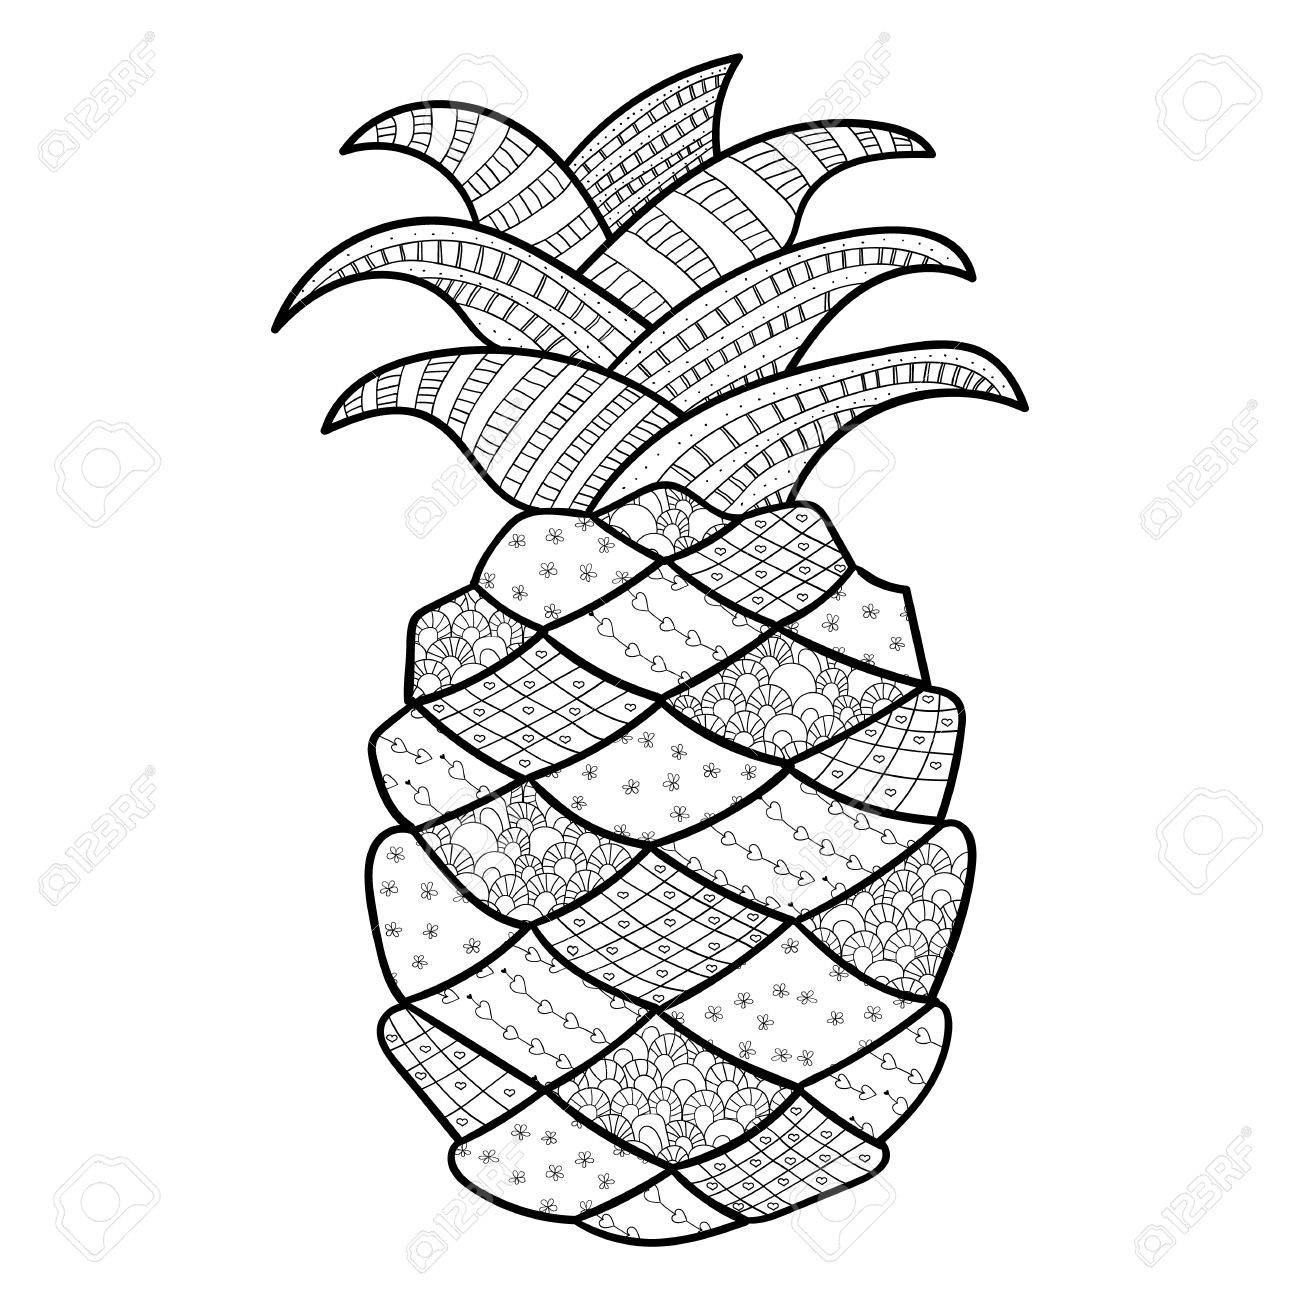 pineapple adult coloring page zentangle inspired whimsical line art vector illustration stock vector - Coloring Page Zentangle